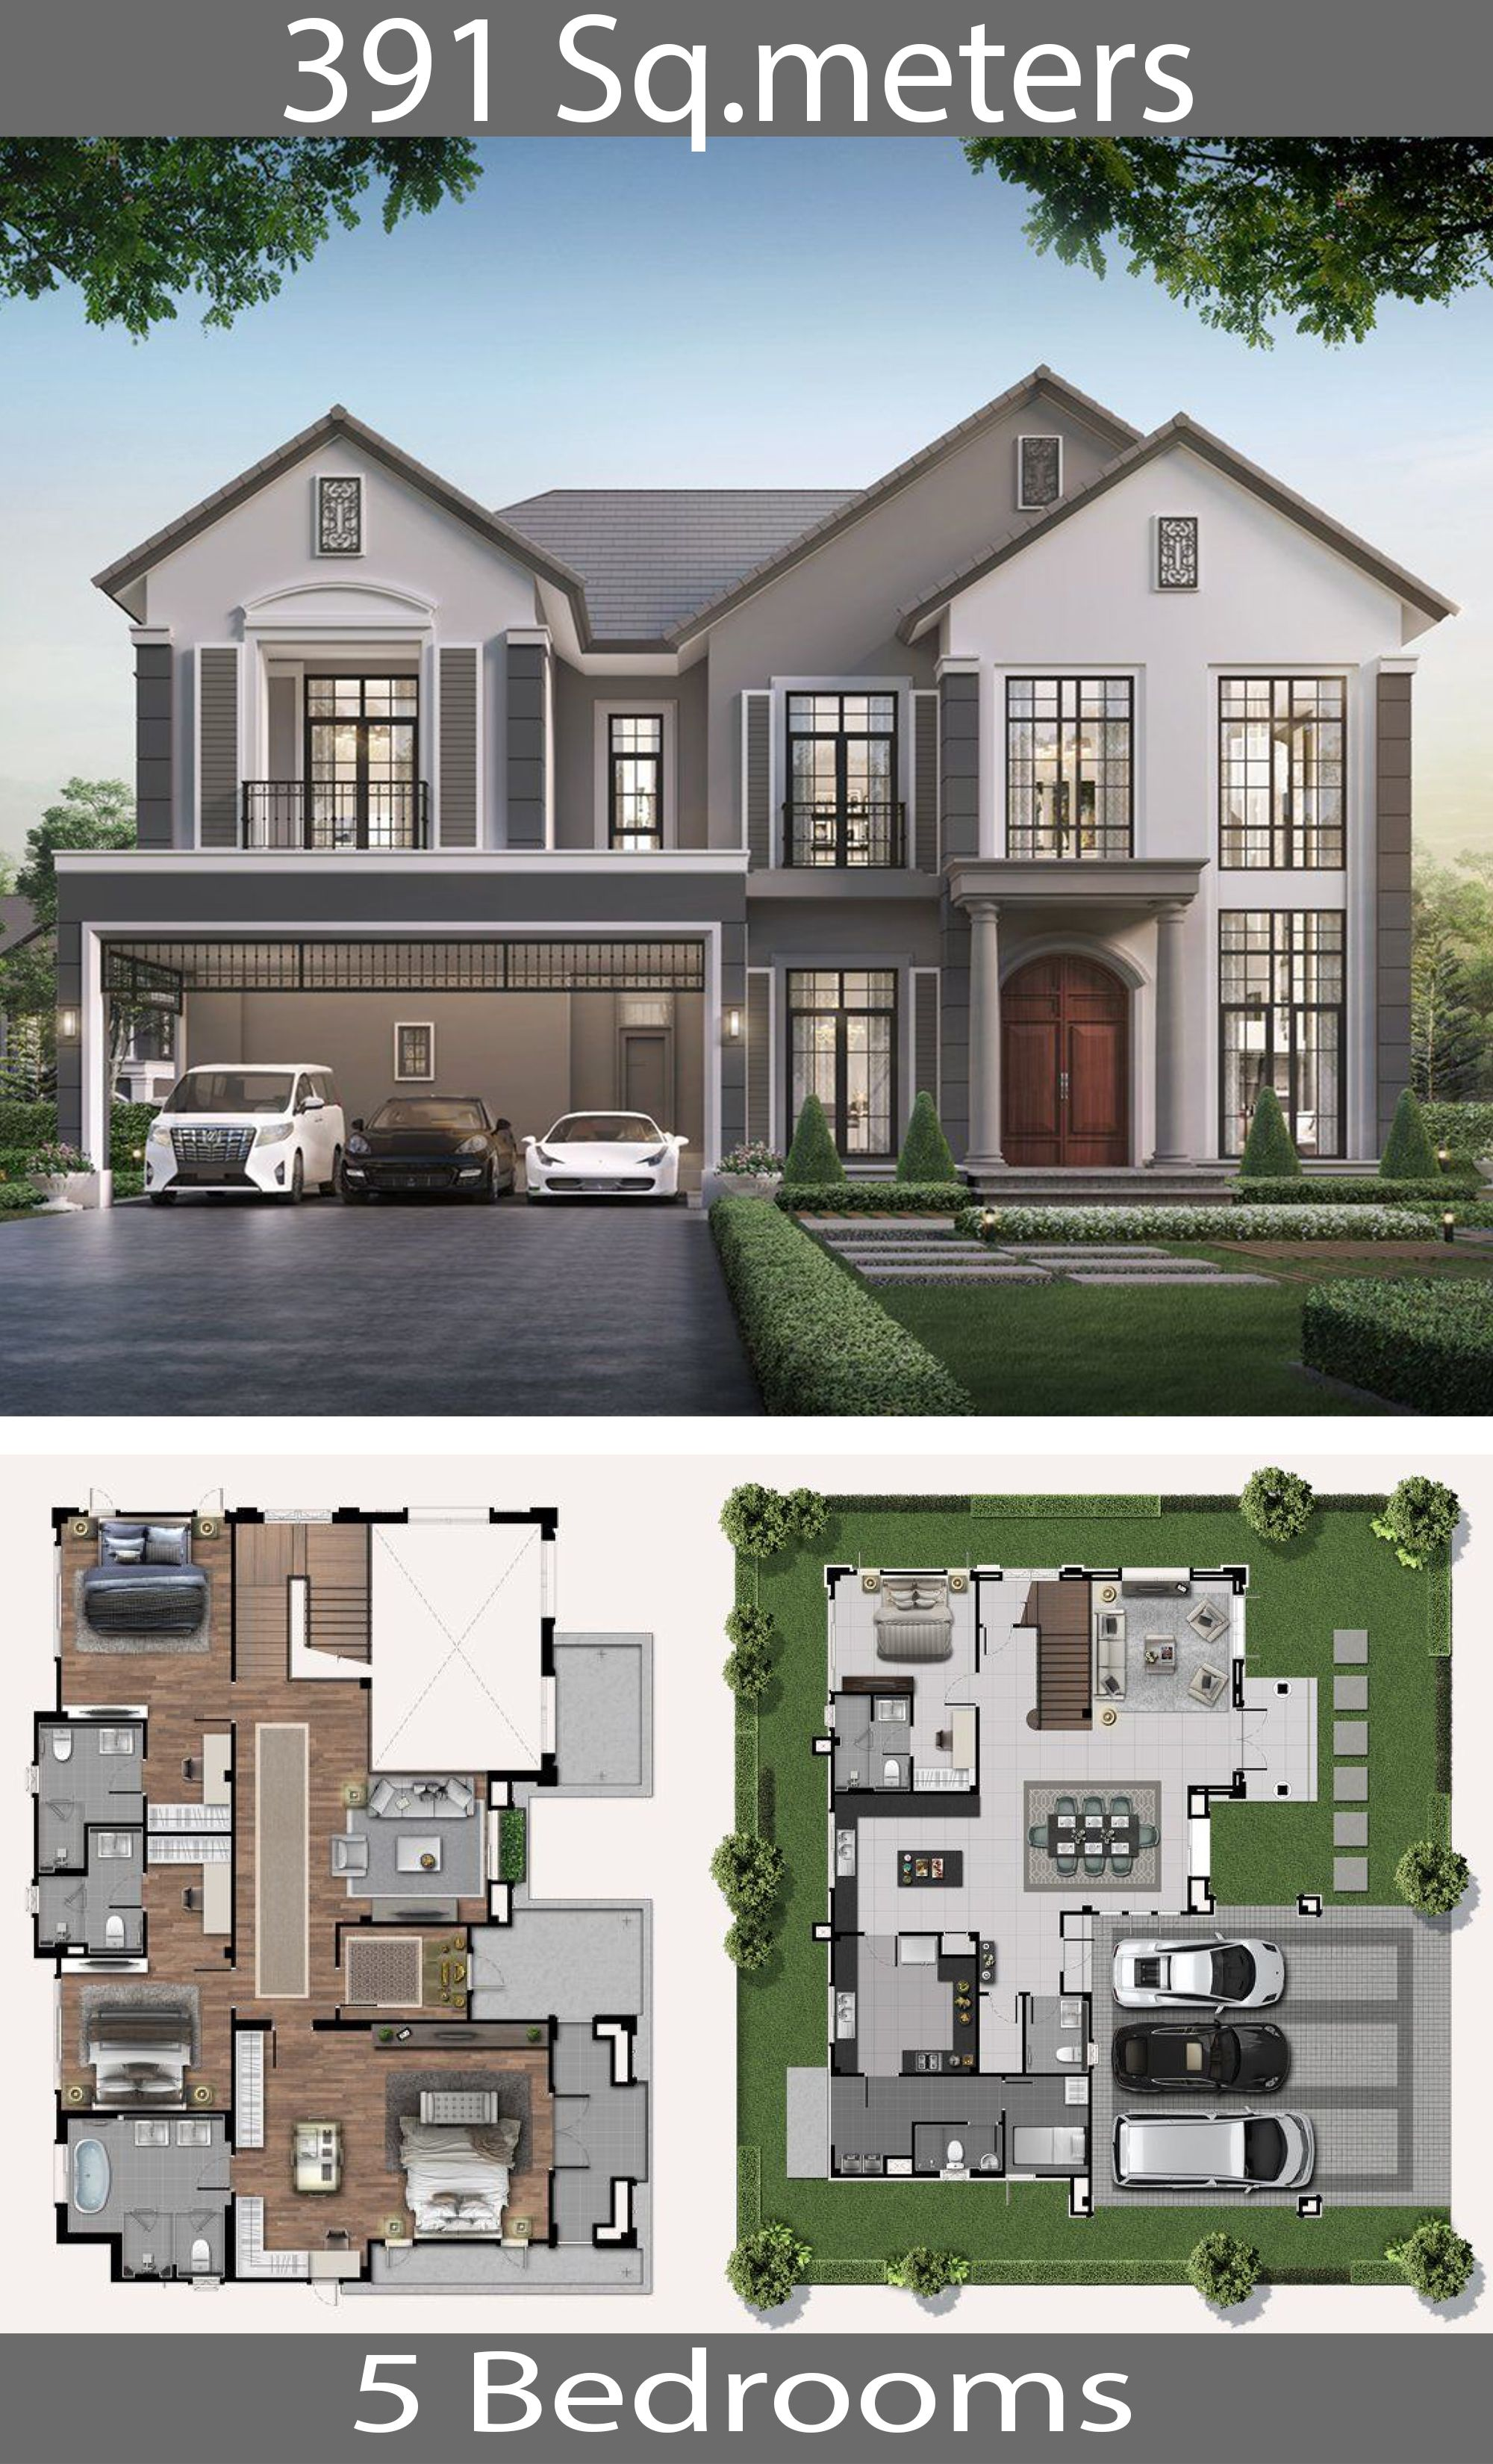 2 Storey House 391 Square Meters In 2020 Sims House Plans Beautiful House Plans Sims House Design